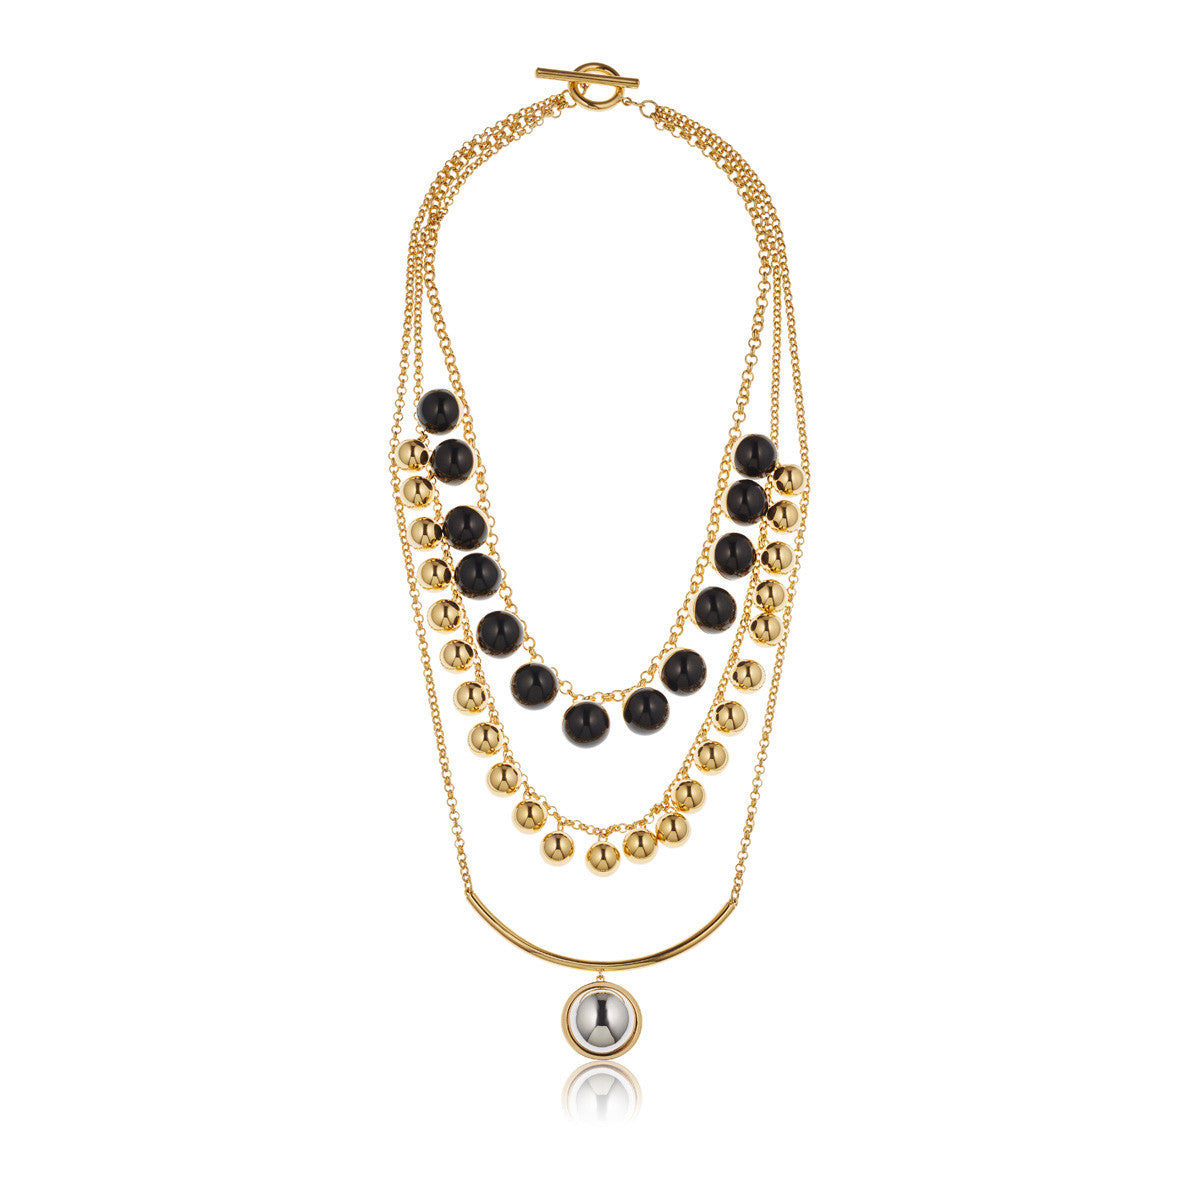 Solid brass, 18K gold plated and black onyx Asterism statement necklace - front